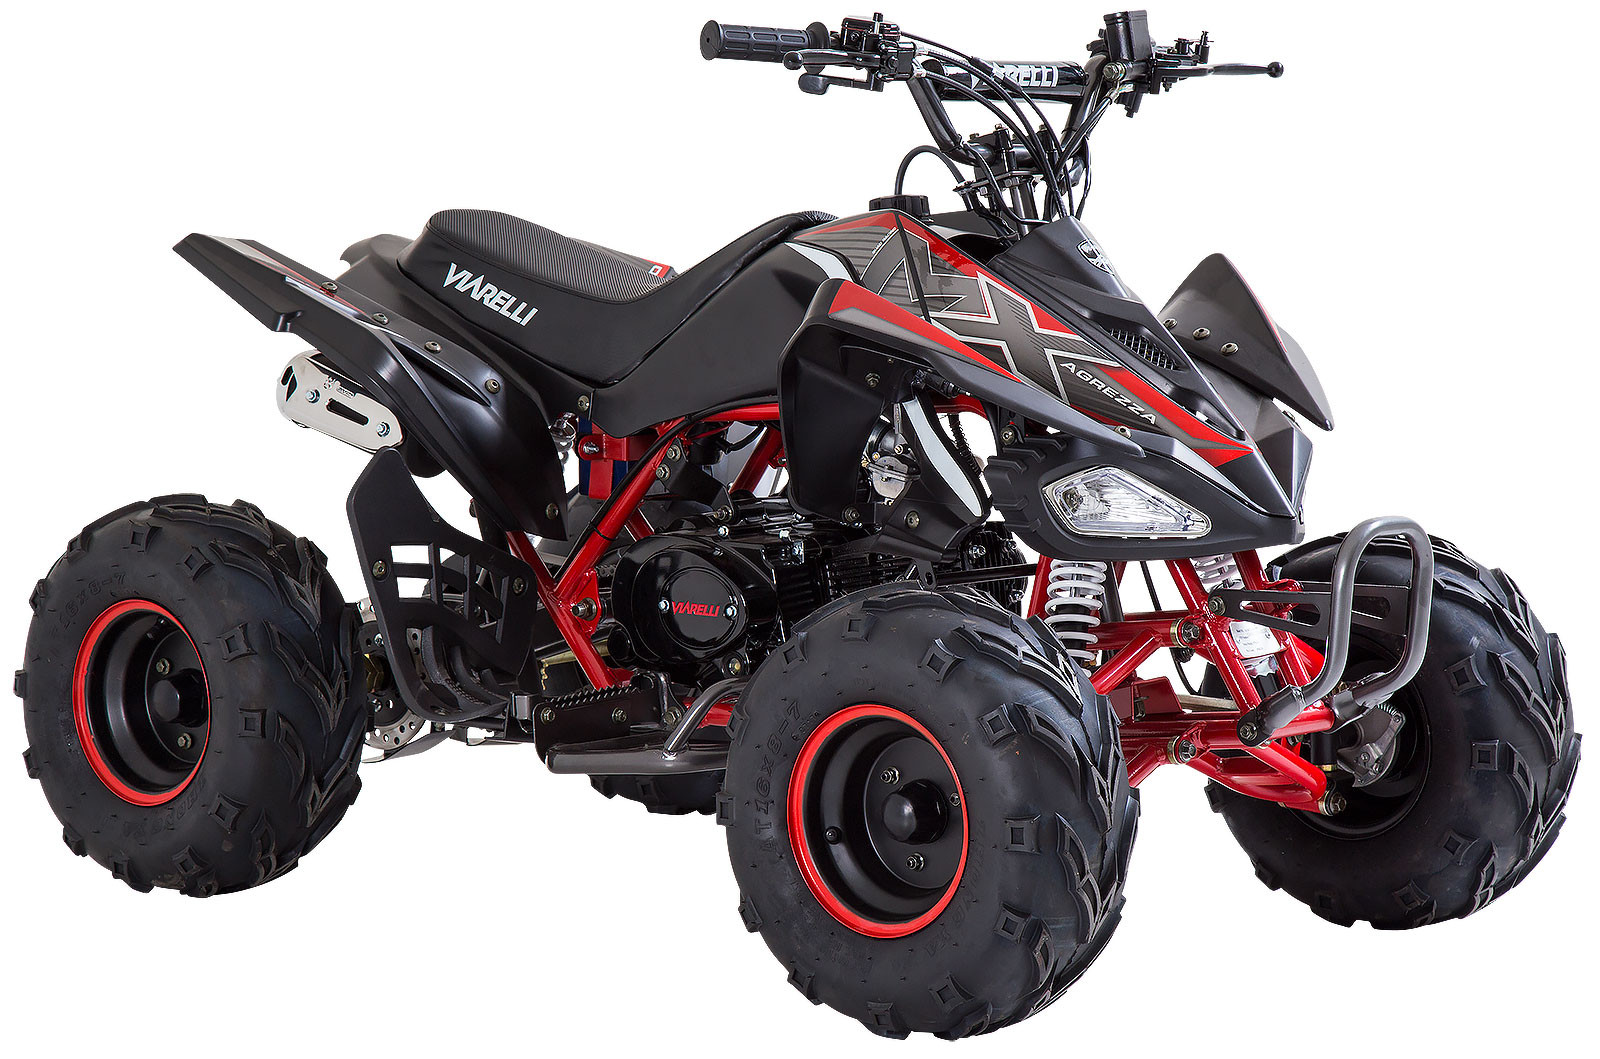 Viarelli Agrezza ATV 90cc